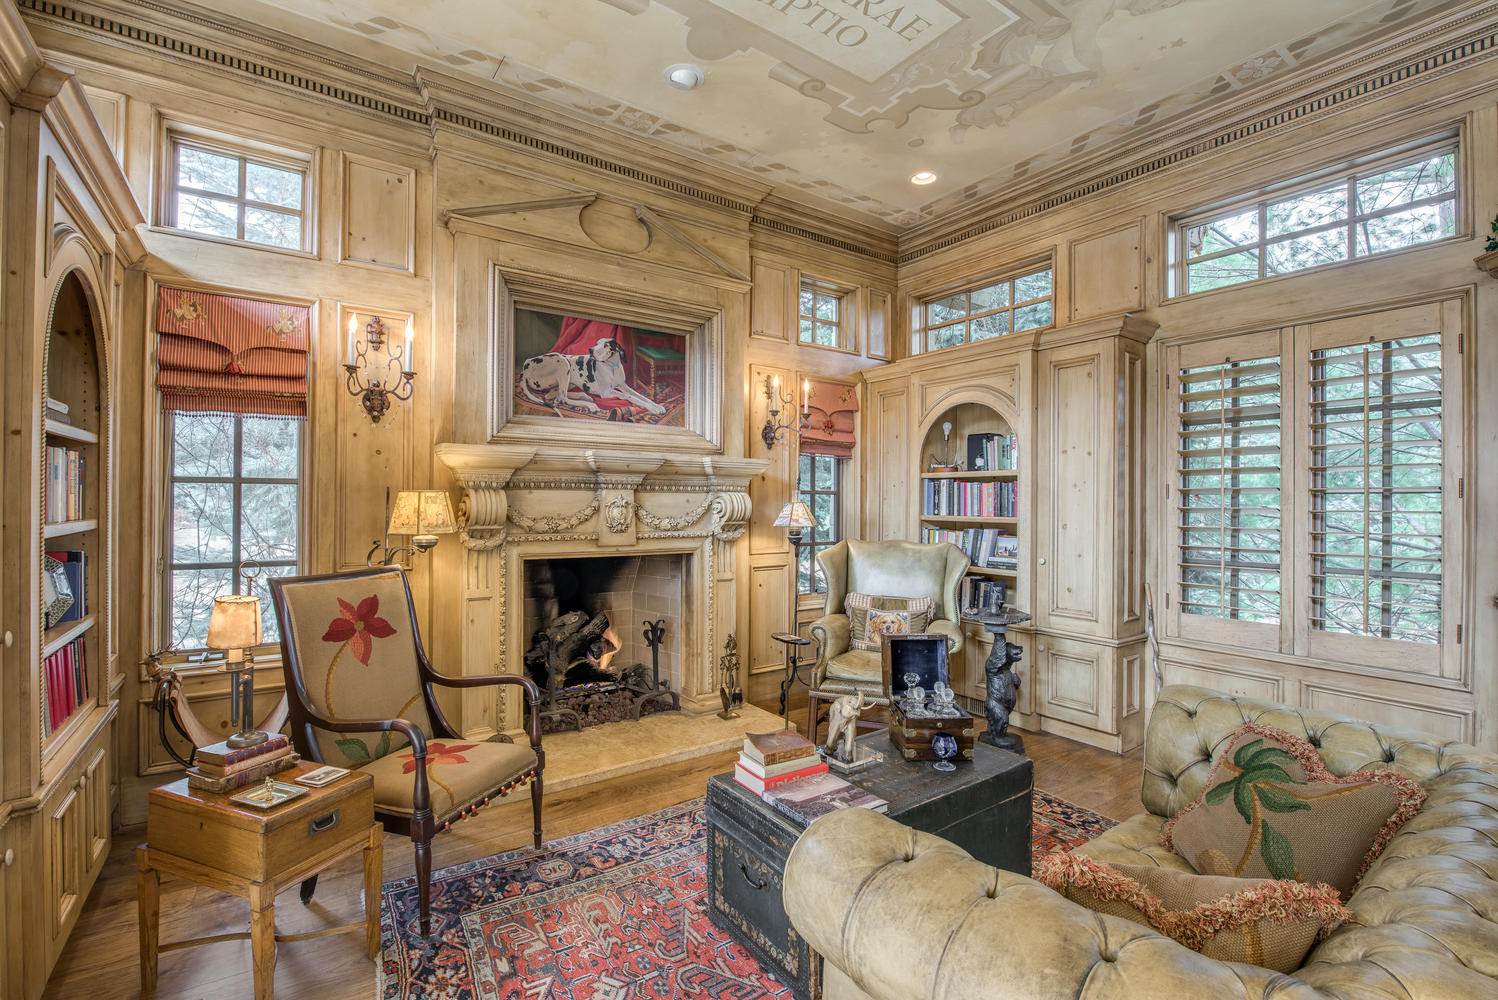 Additional photo for property listing at English Manor House with Splendid Sophistication & Elegant Appointments 4580 S Franklin Street Cherry Hills Village, Colorado 80113 United States